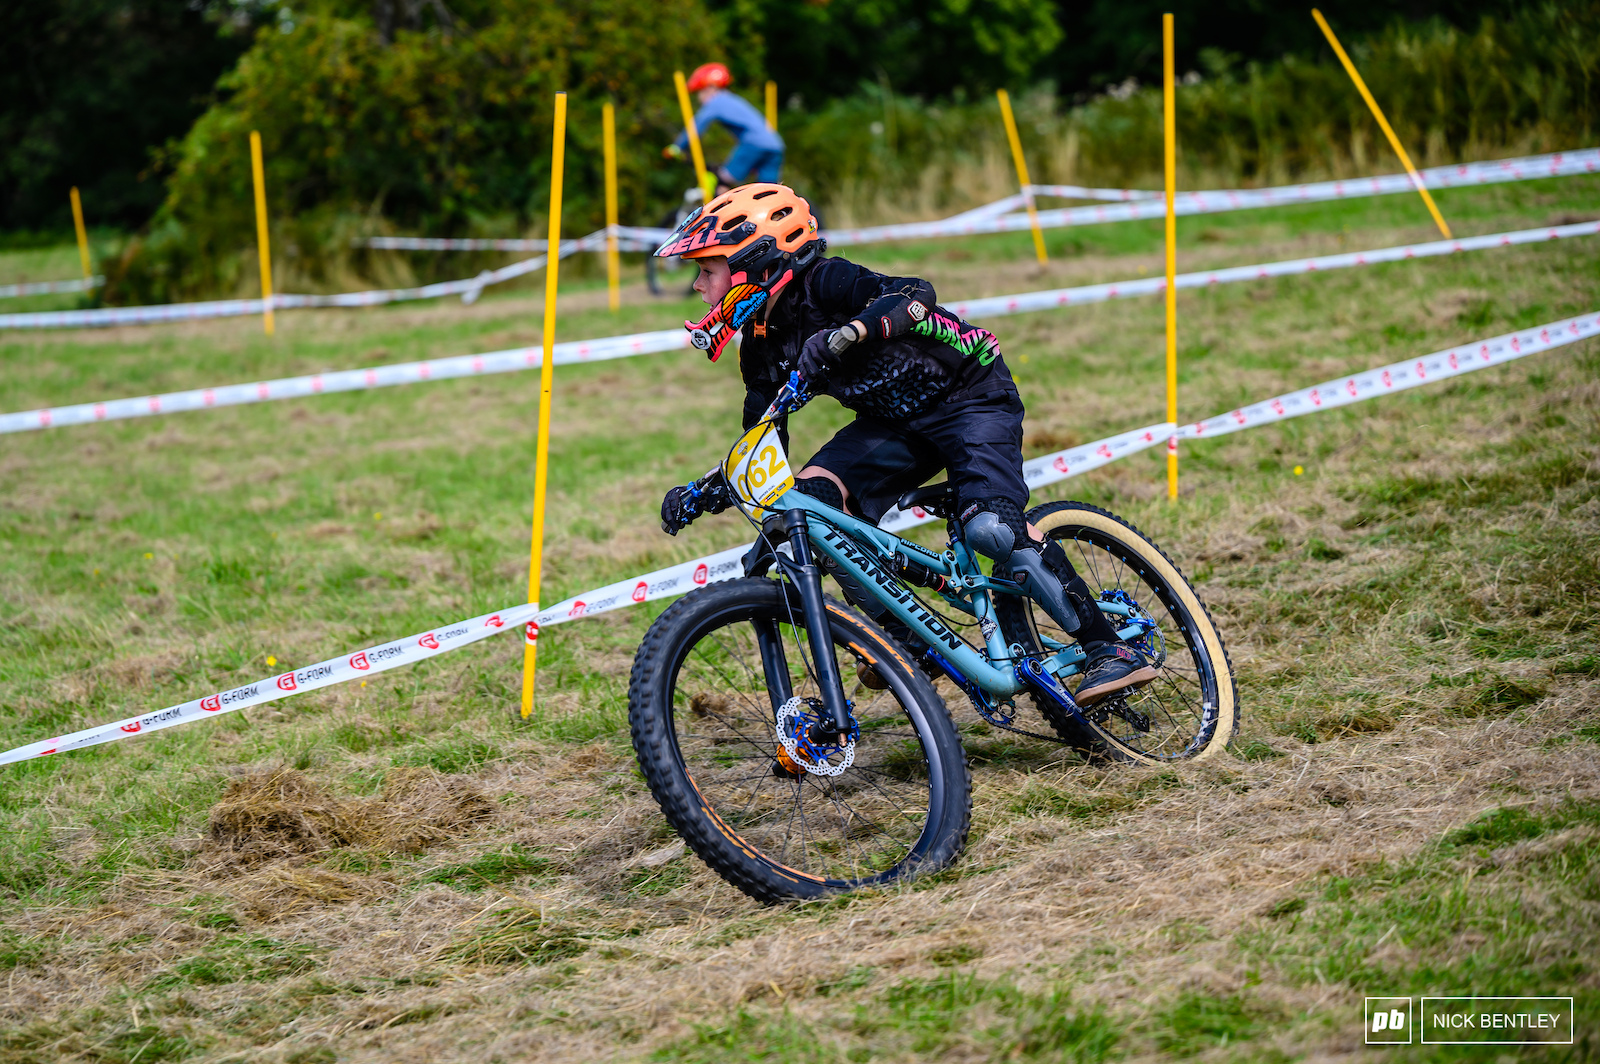 AJ Lewendon carving the corners of the Dual Slalom course